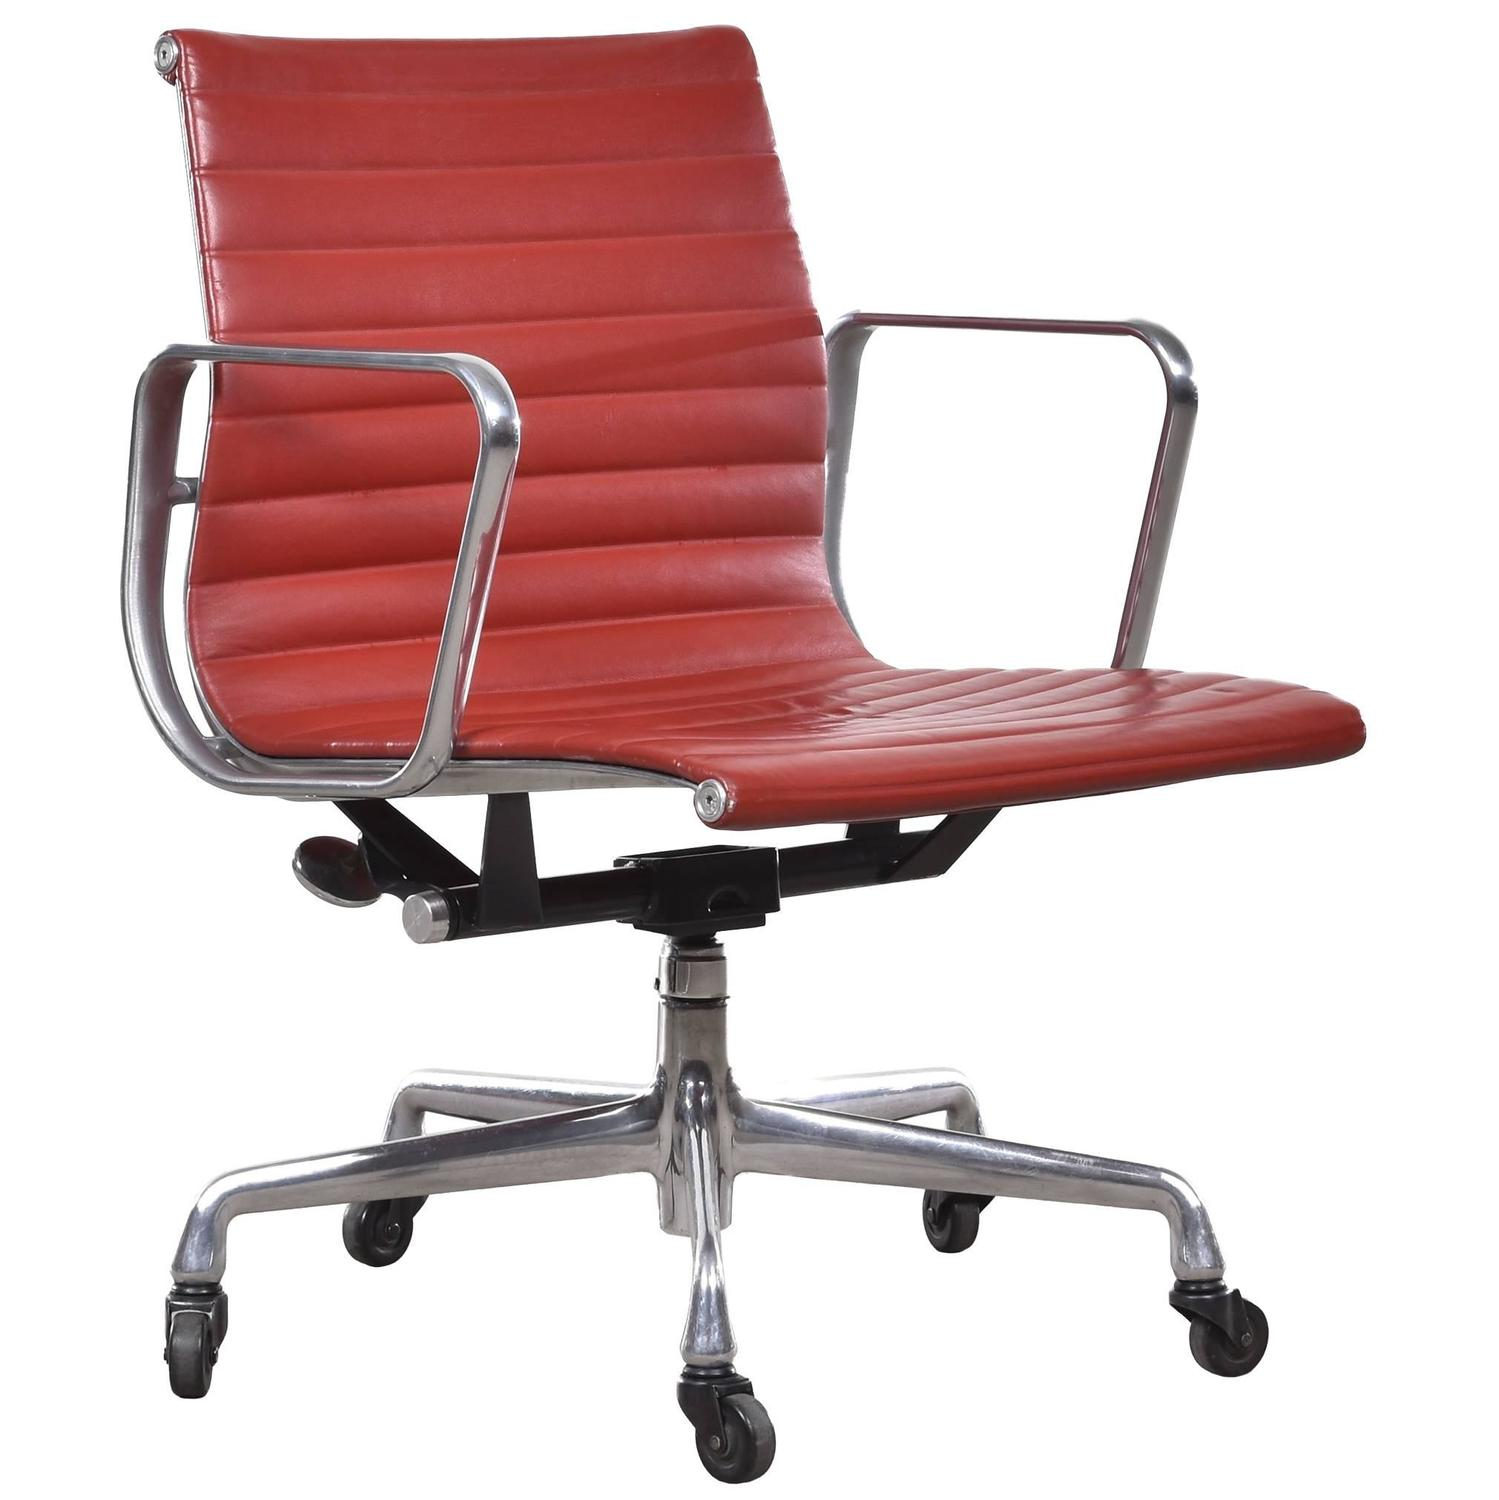 Herman Miller Eames Office Chair Eames Management Office Chair For Herman Miller For Sale